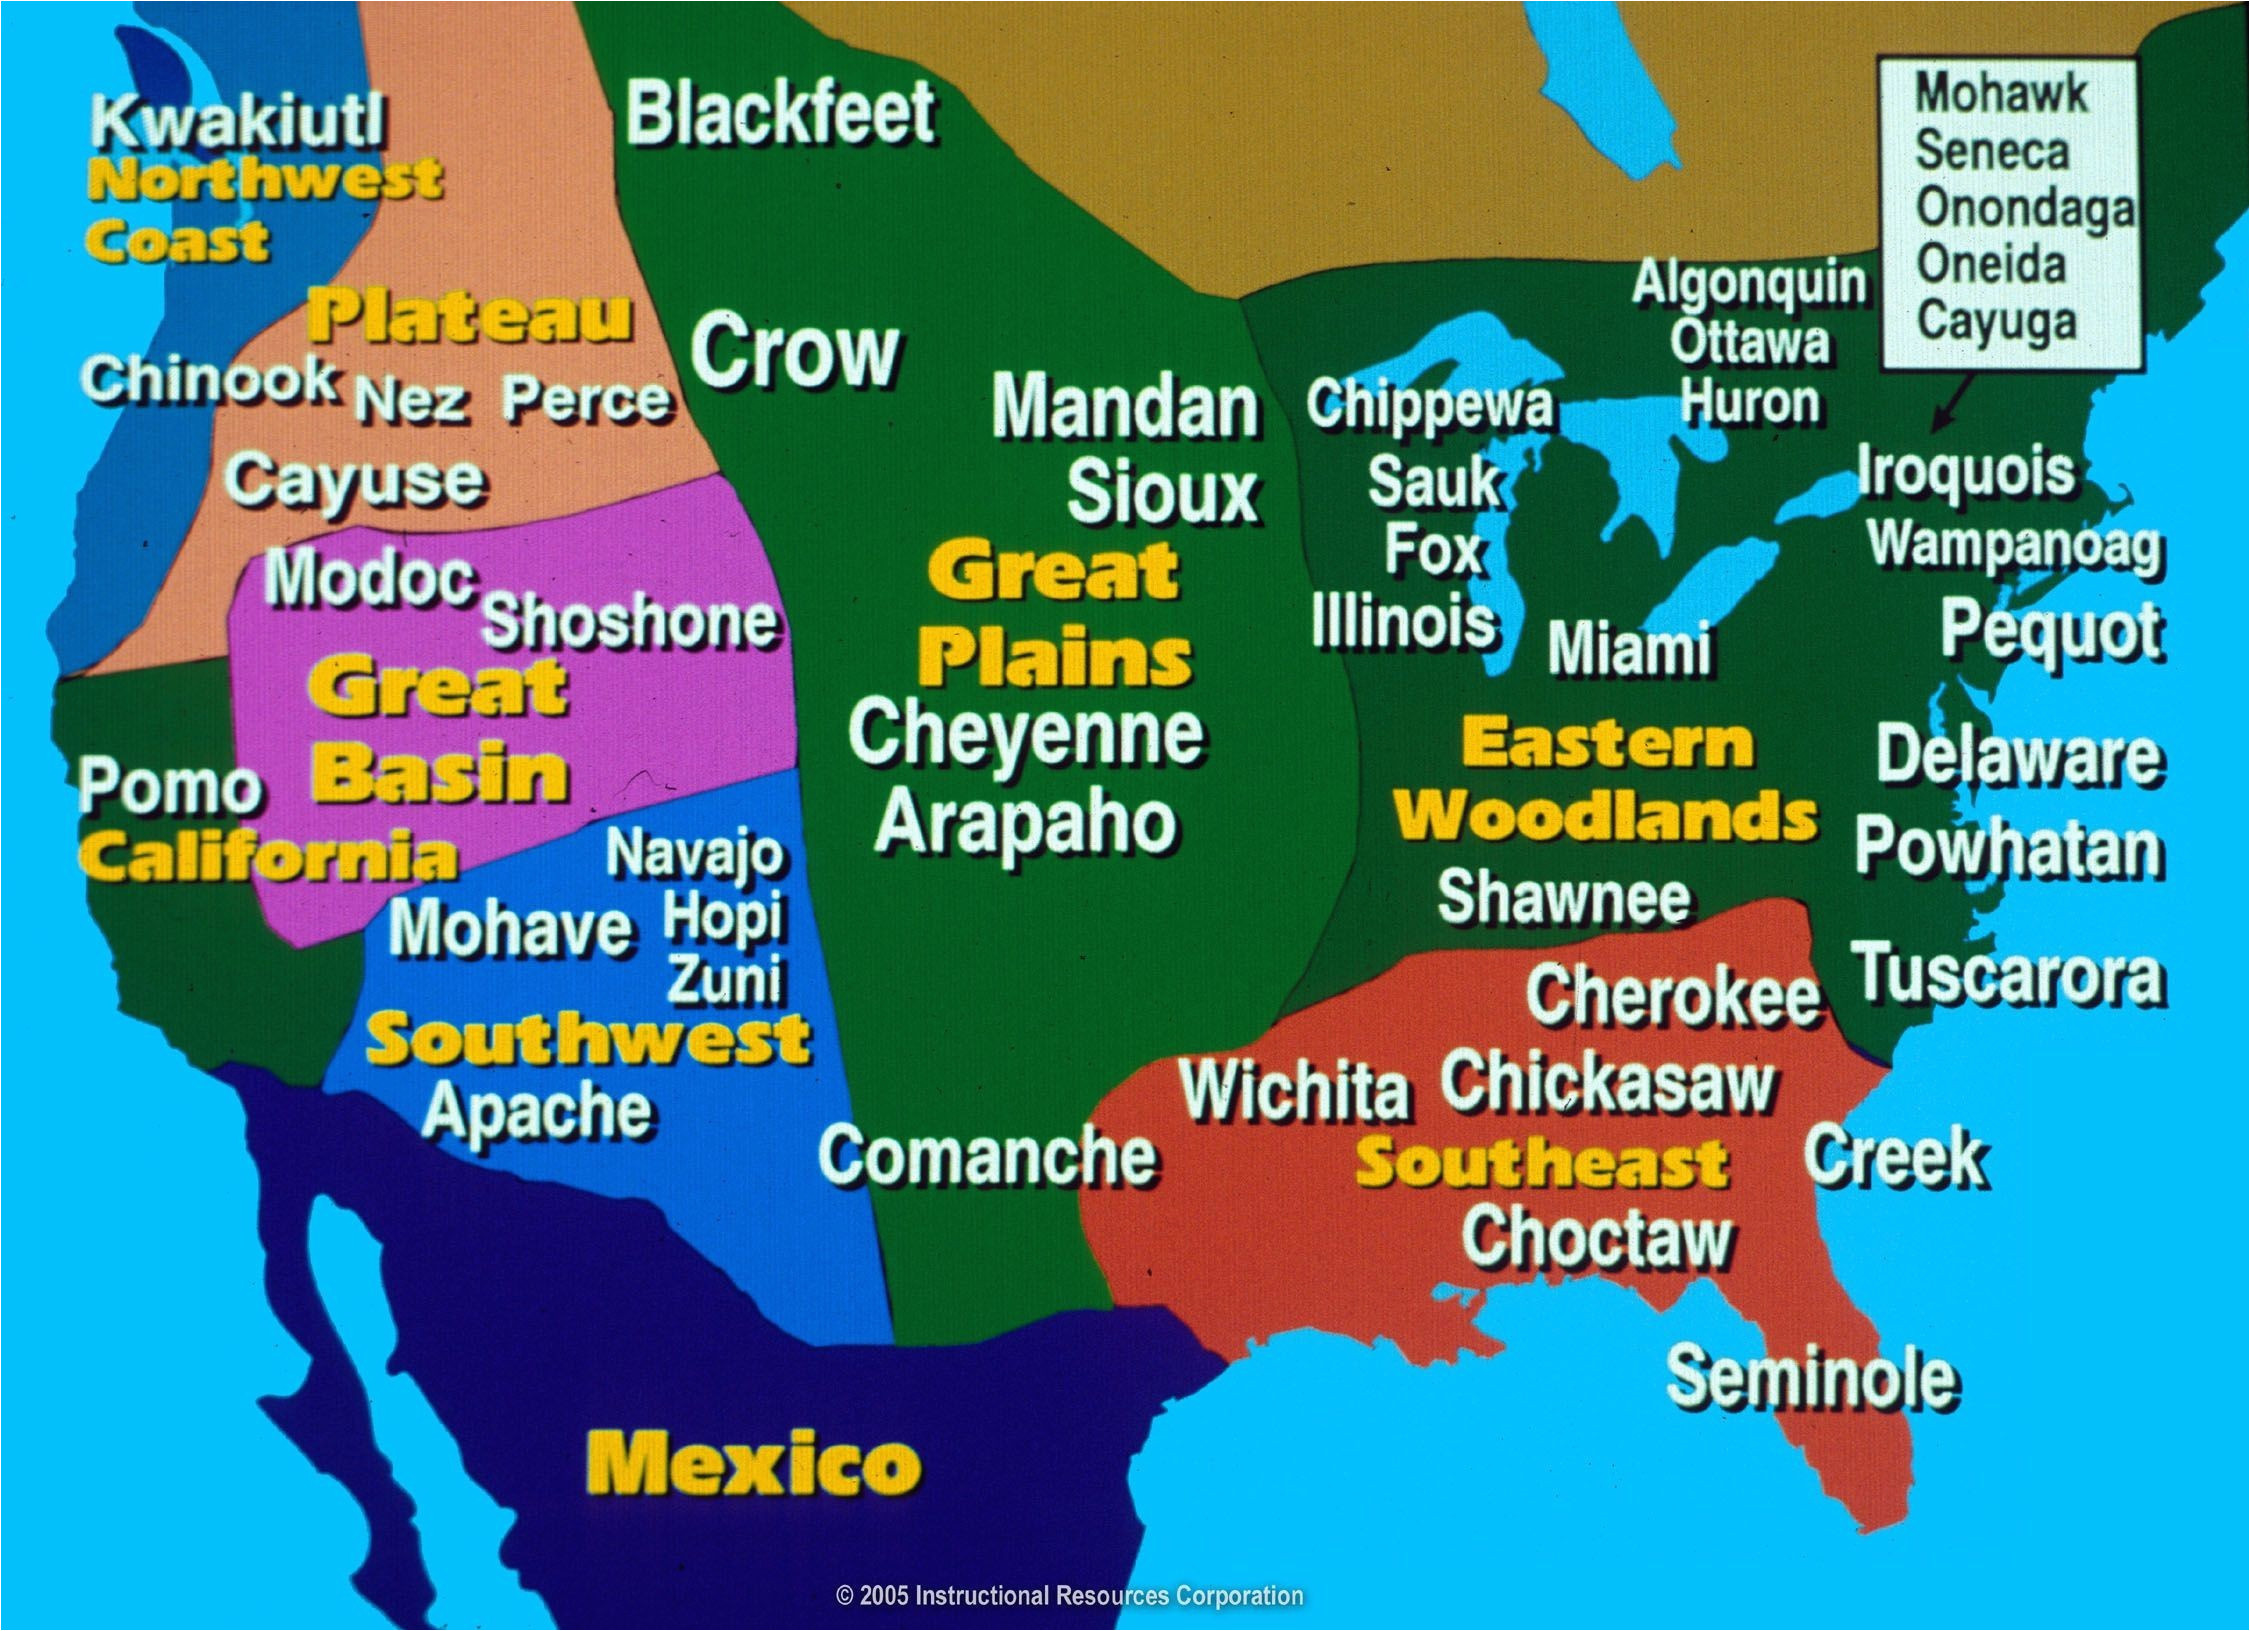 Colorado Native American Tribes Map Map Of Native American ... on map of israel tribes, map of tribal lands in the us, map of madagascar tribes, map of nevada tribes, map of africa tribes, map of plains tribes, map of new hampshire tribes, map of zimbabwe tribes, early american tribes, nebraska indian tribes, map of north carolina tribes, united states indian tribes, map of kenya tribes, map of judaism tribes, map of west african tribes, map of indian tribes, map of washington tribes, map of north american tribes, map of europe tribes, map of liberia tribes,